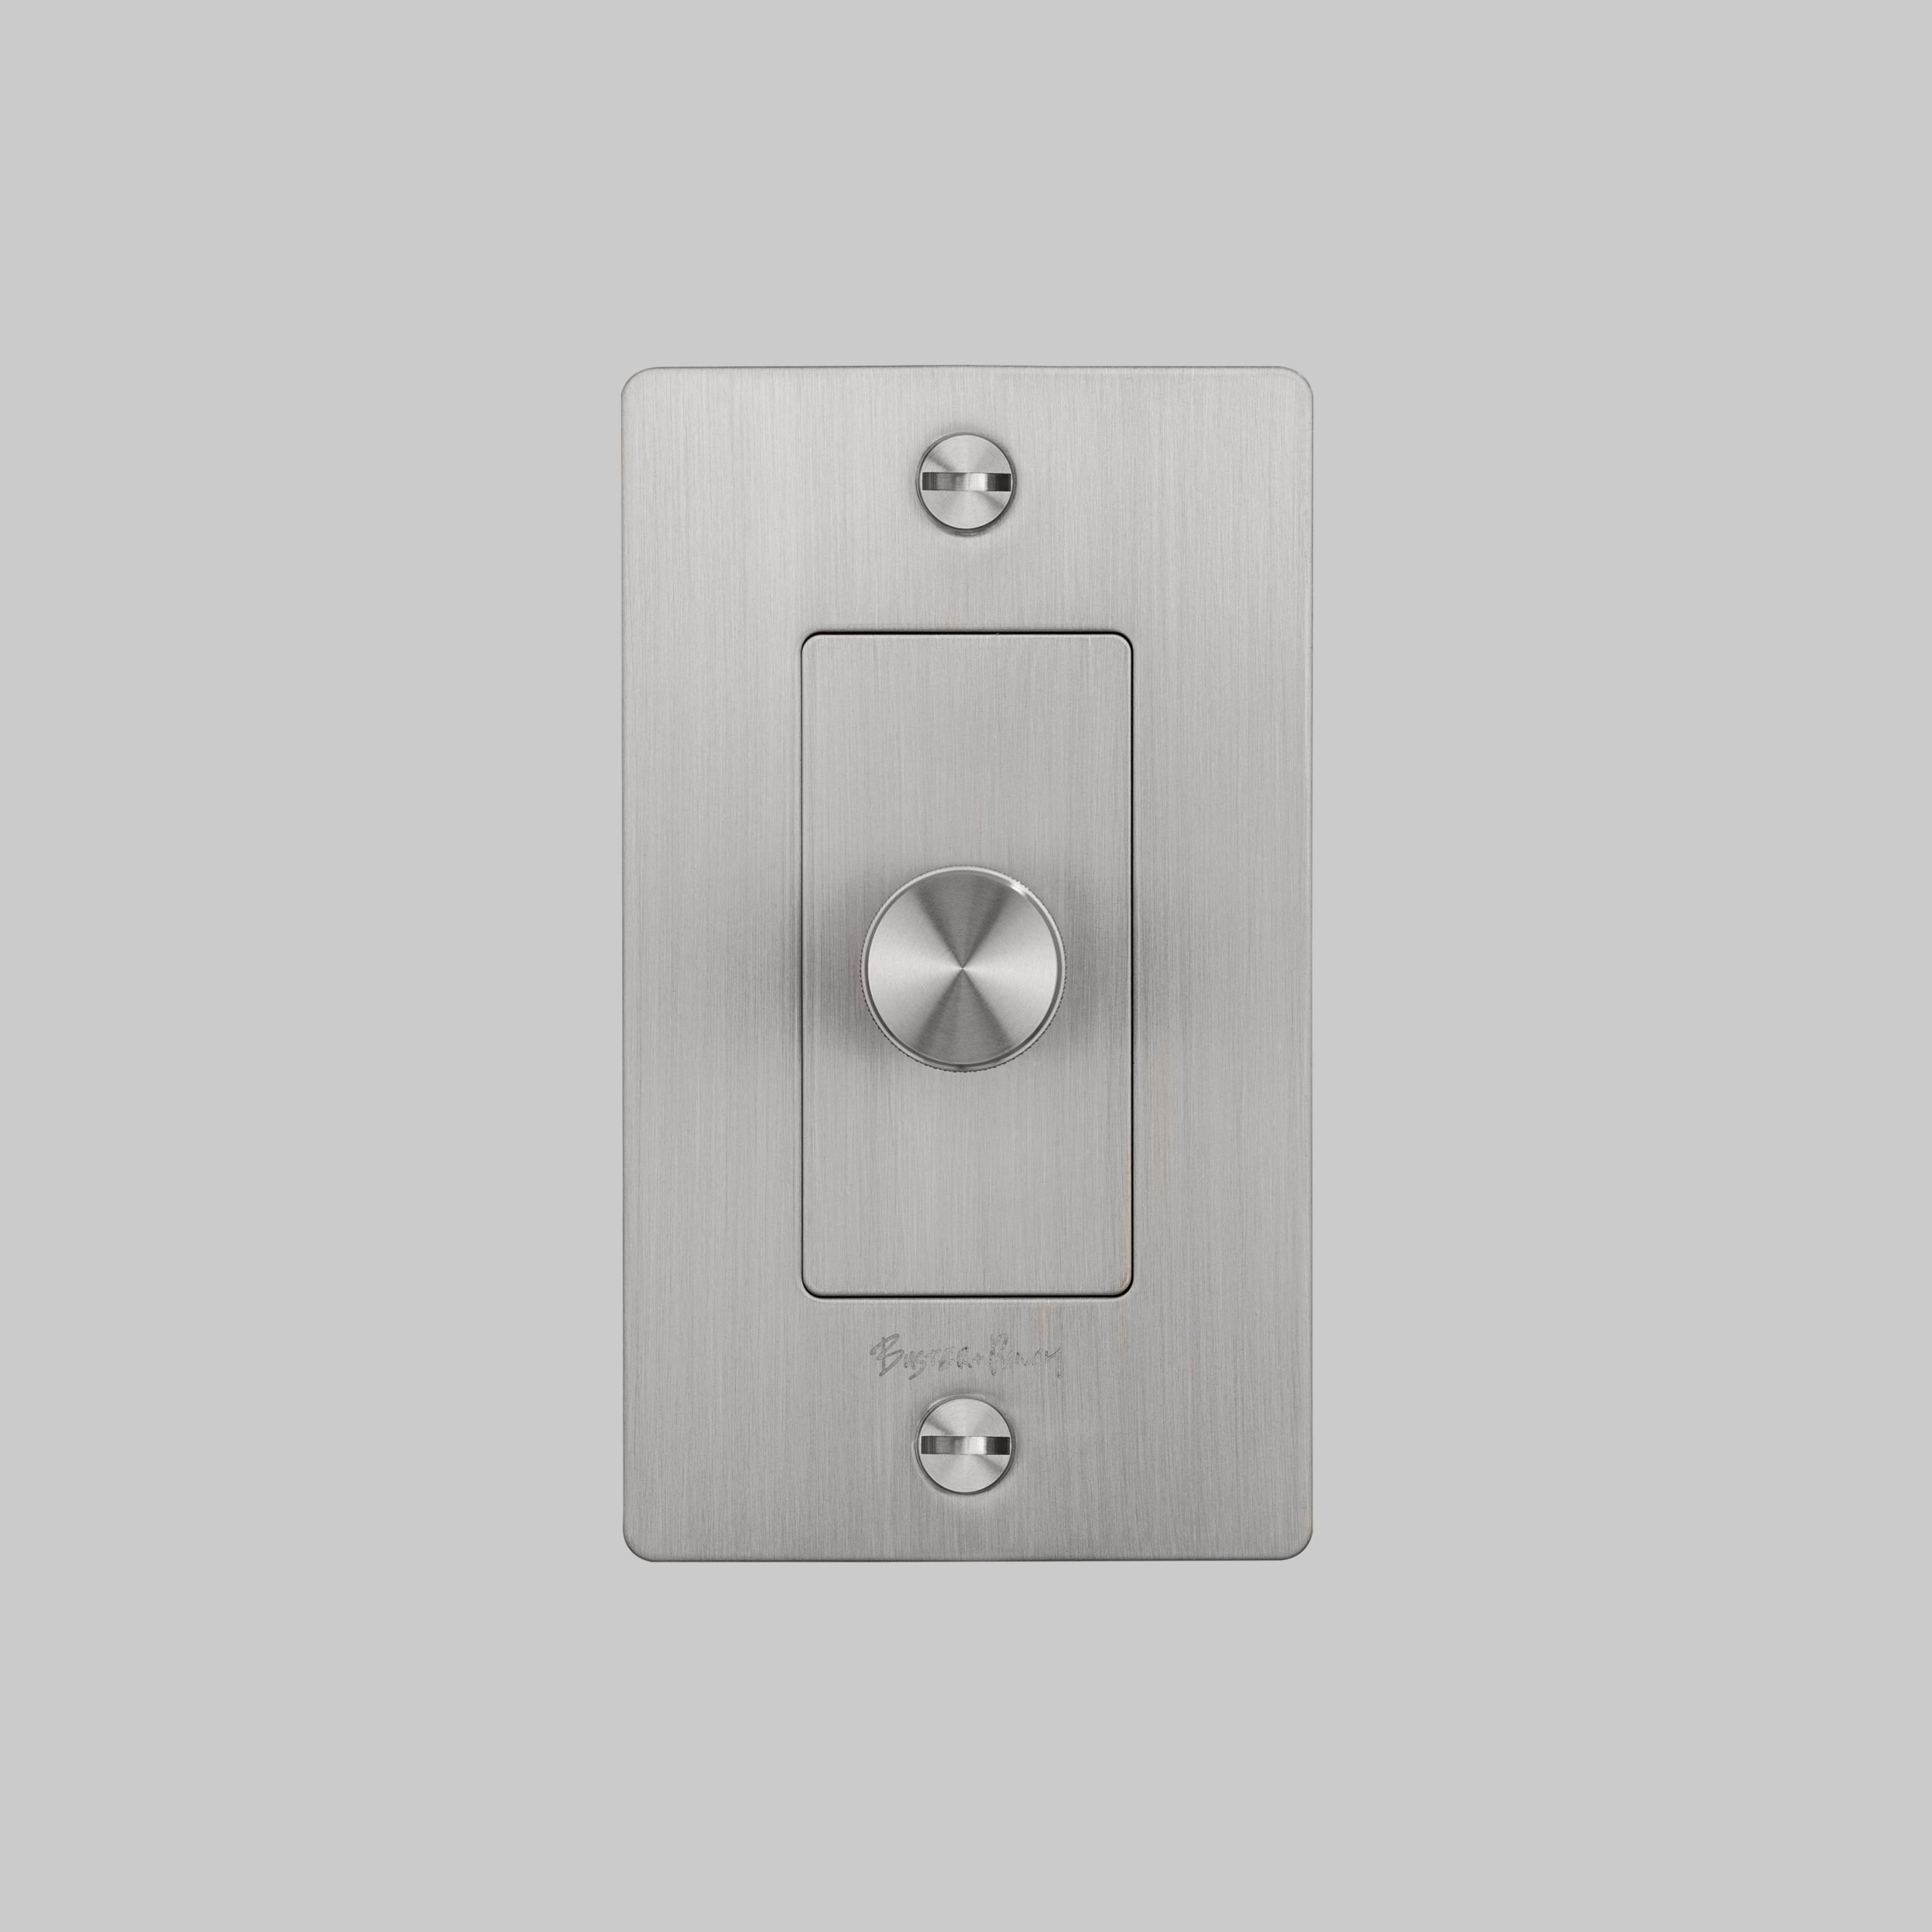 2. Buster+Punch_US_1G_Dimmer_Steel_Front